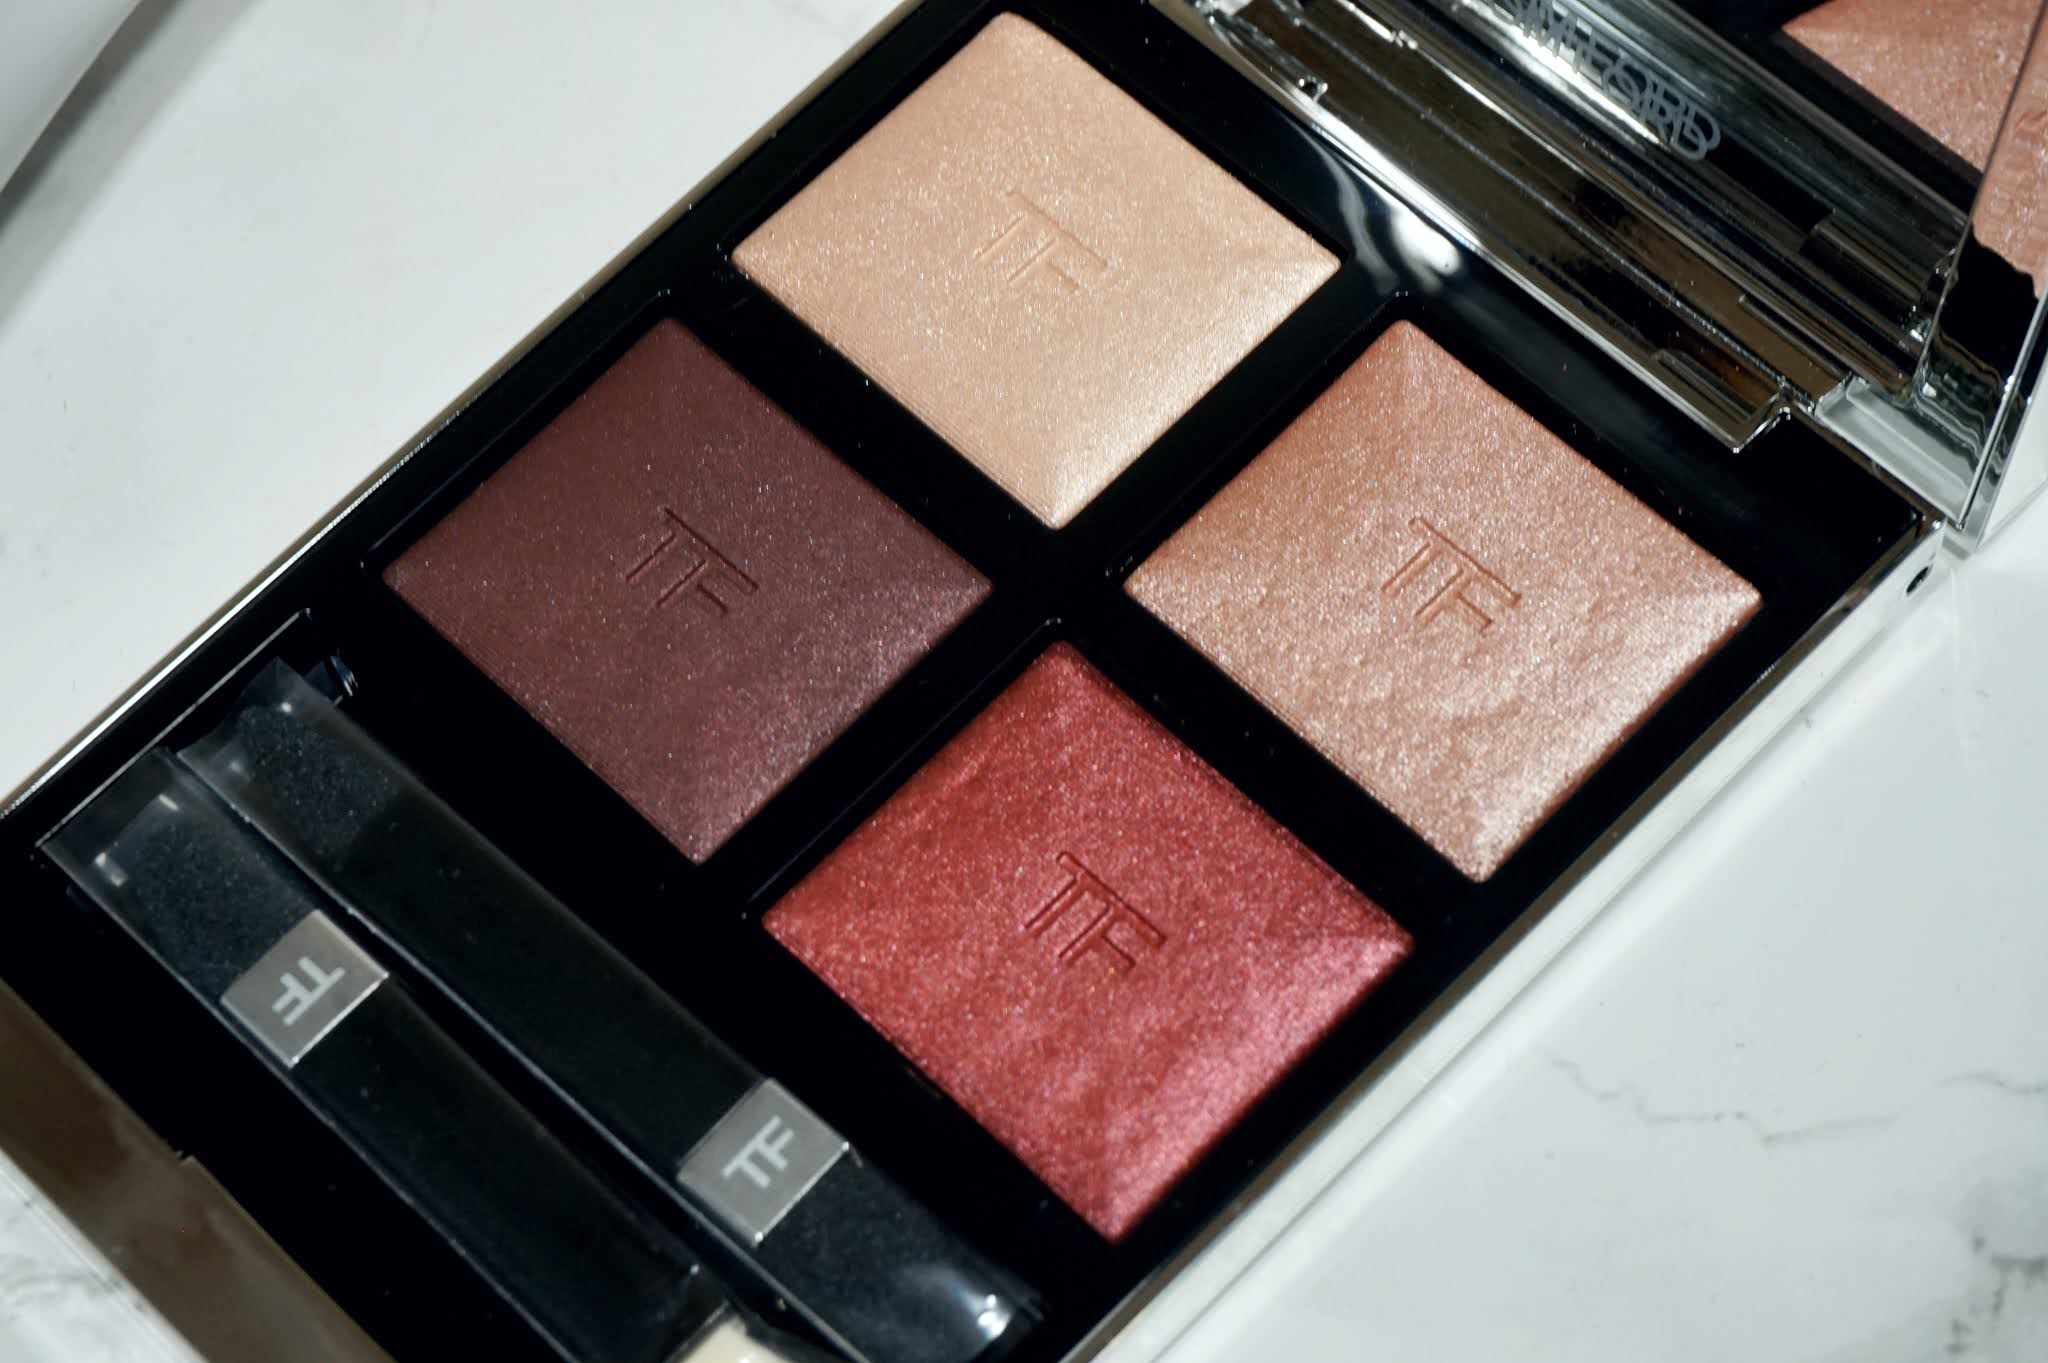 Tom Ford Extreme Eye Color Quad in Mercurial Review and Swatches